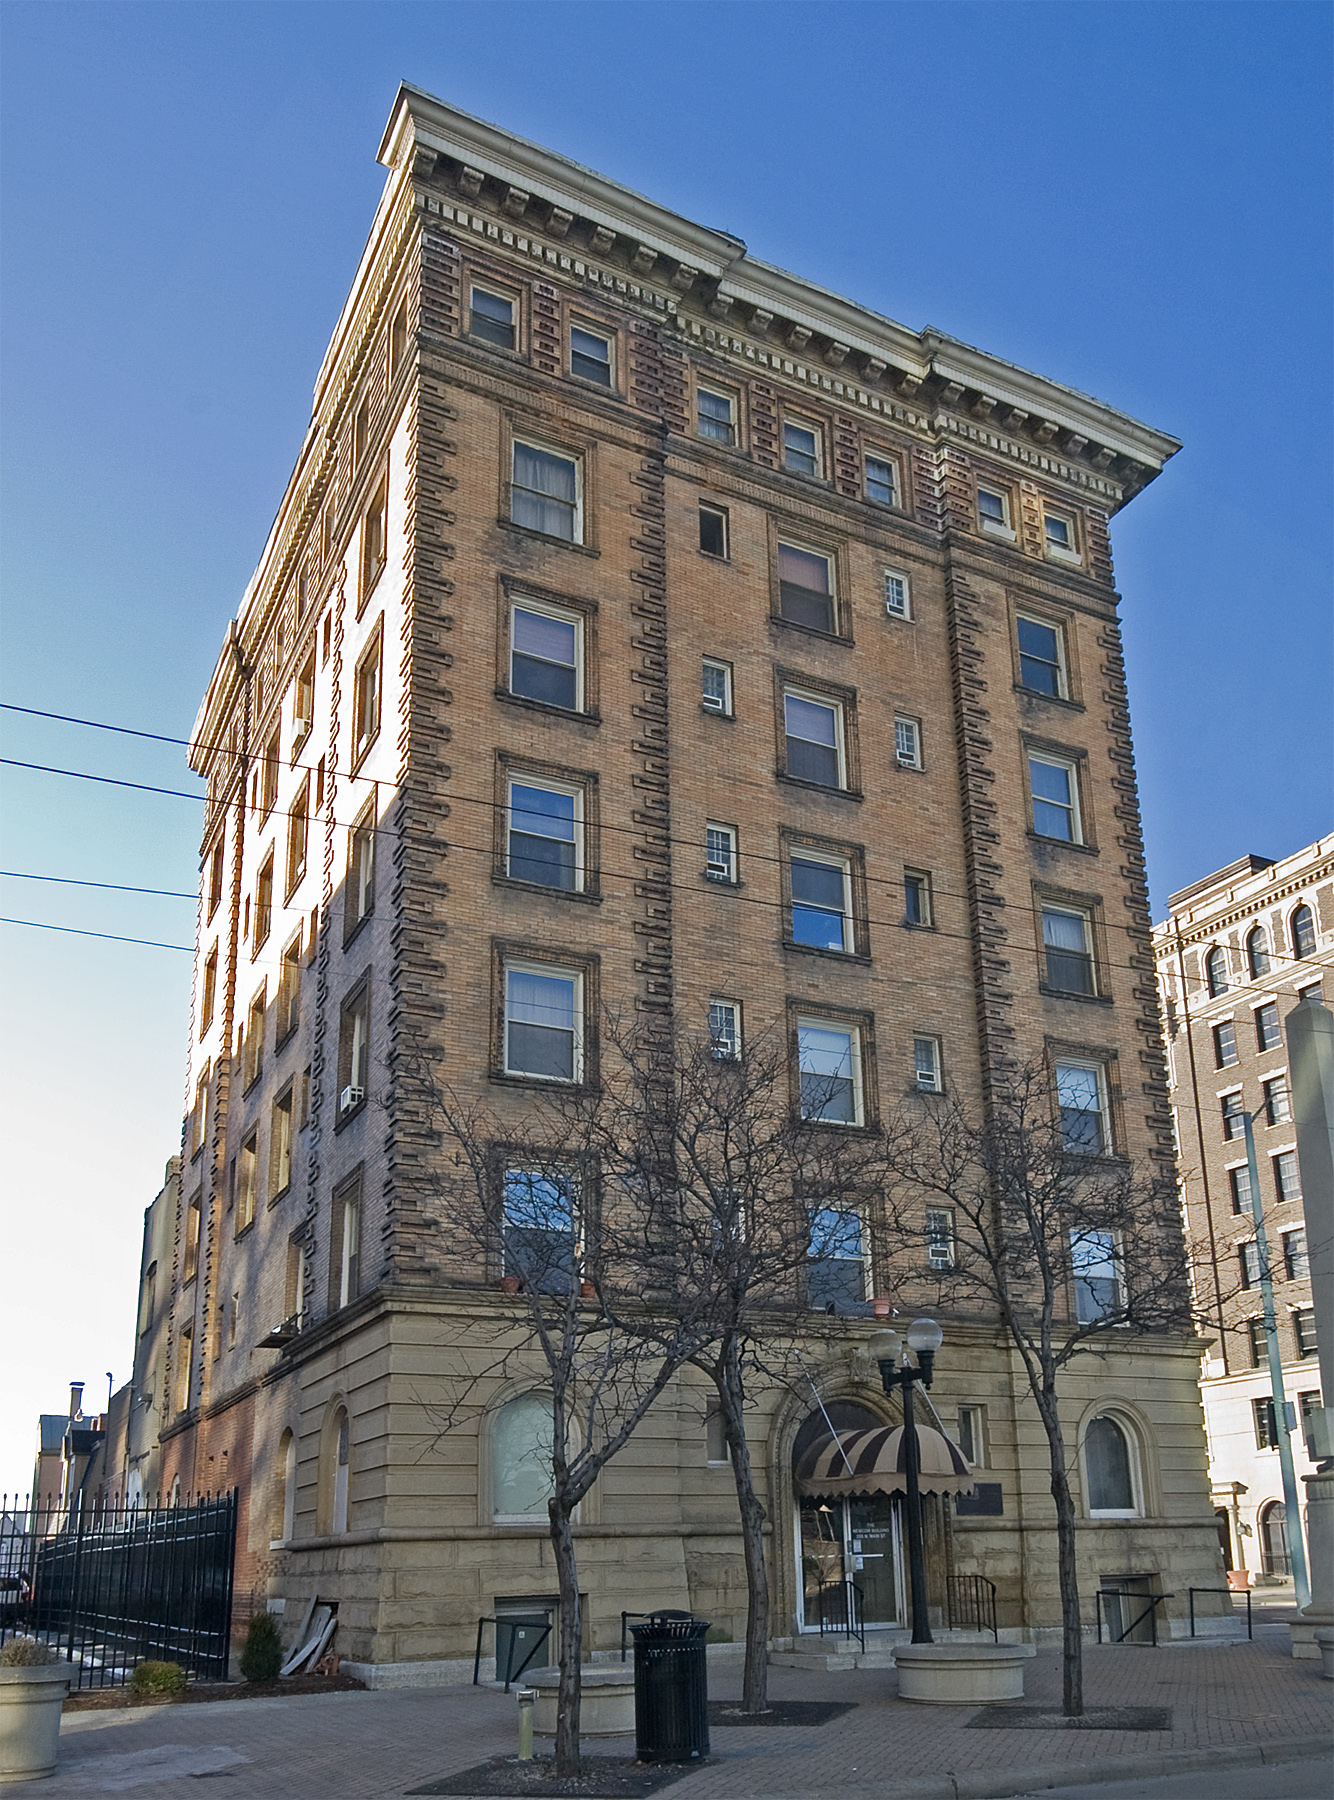 Insco Apartments Building - Wikipedia